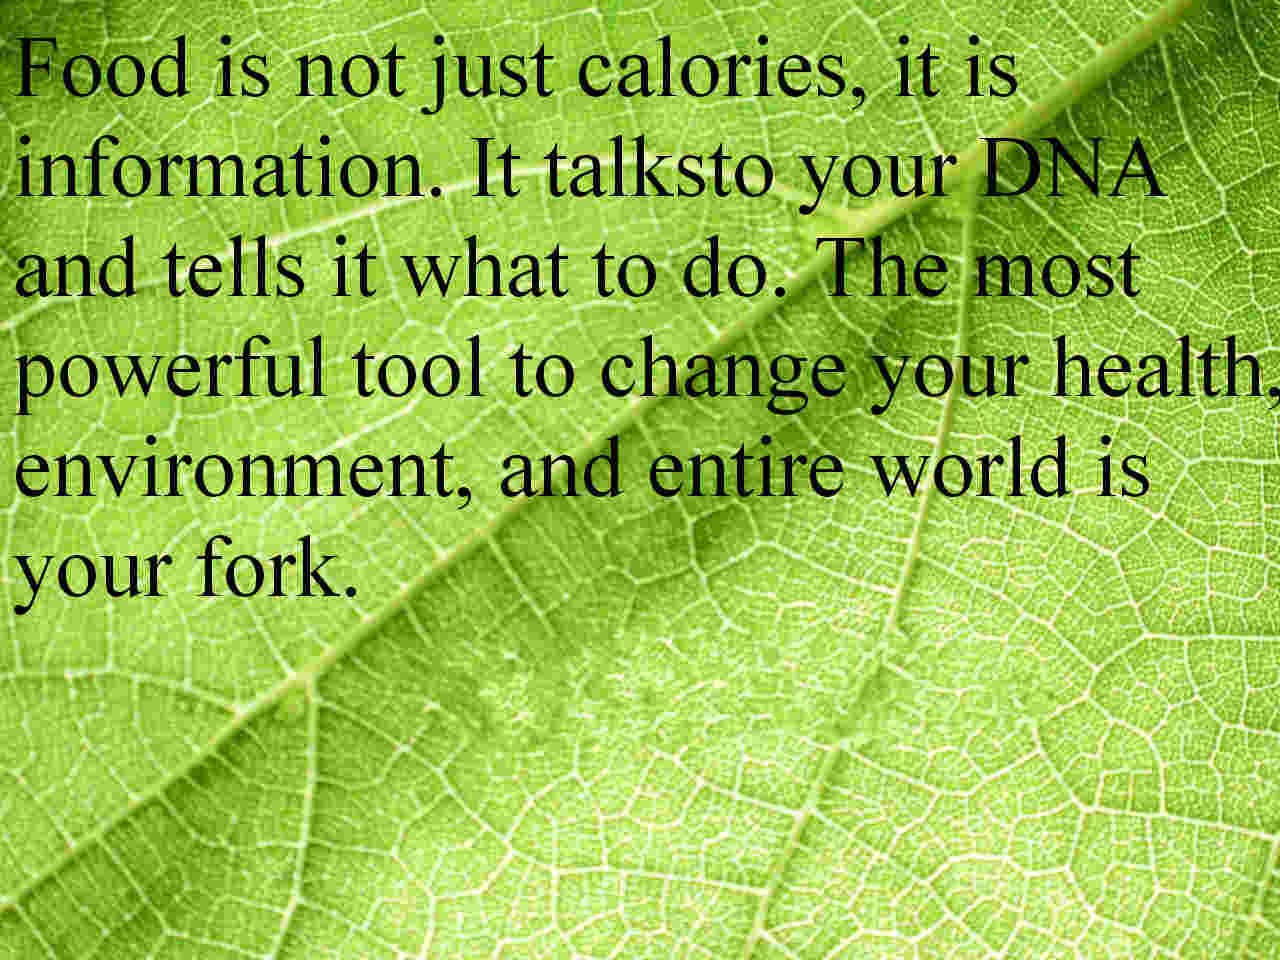 food is information